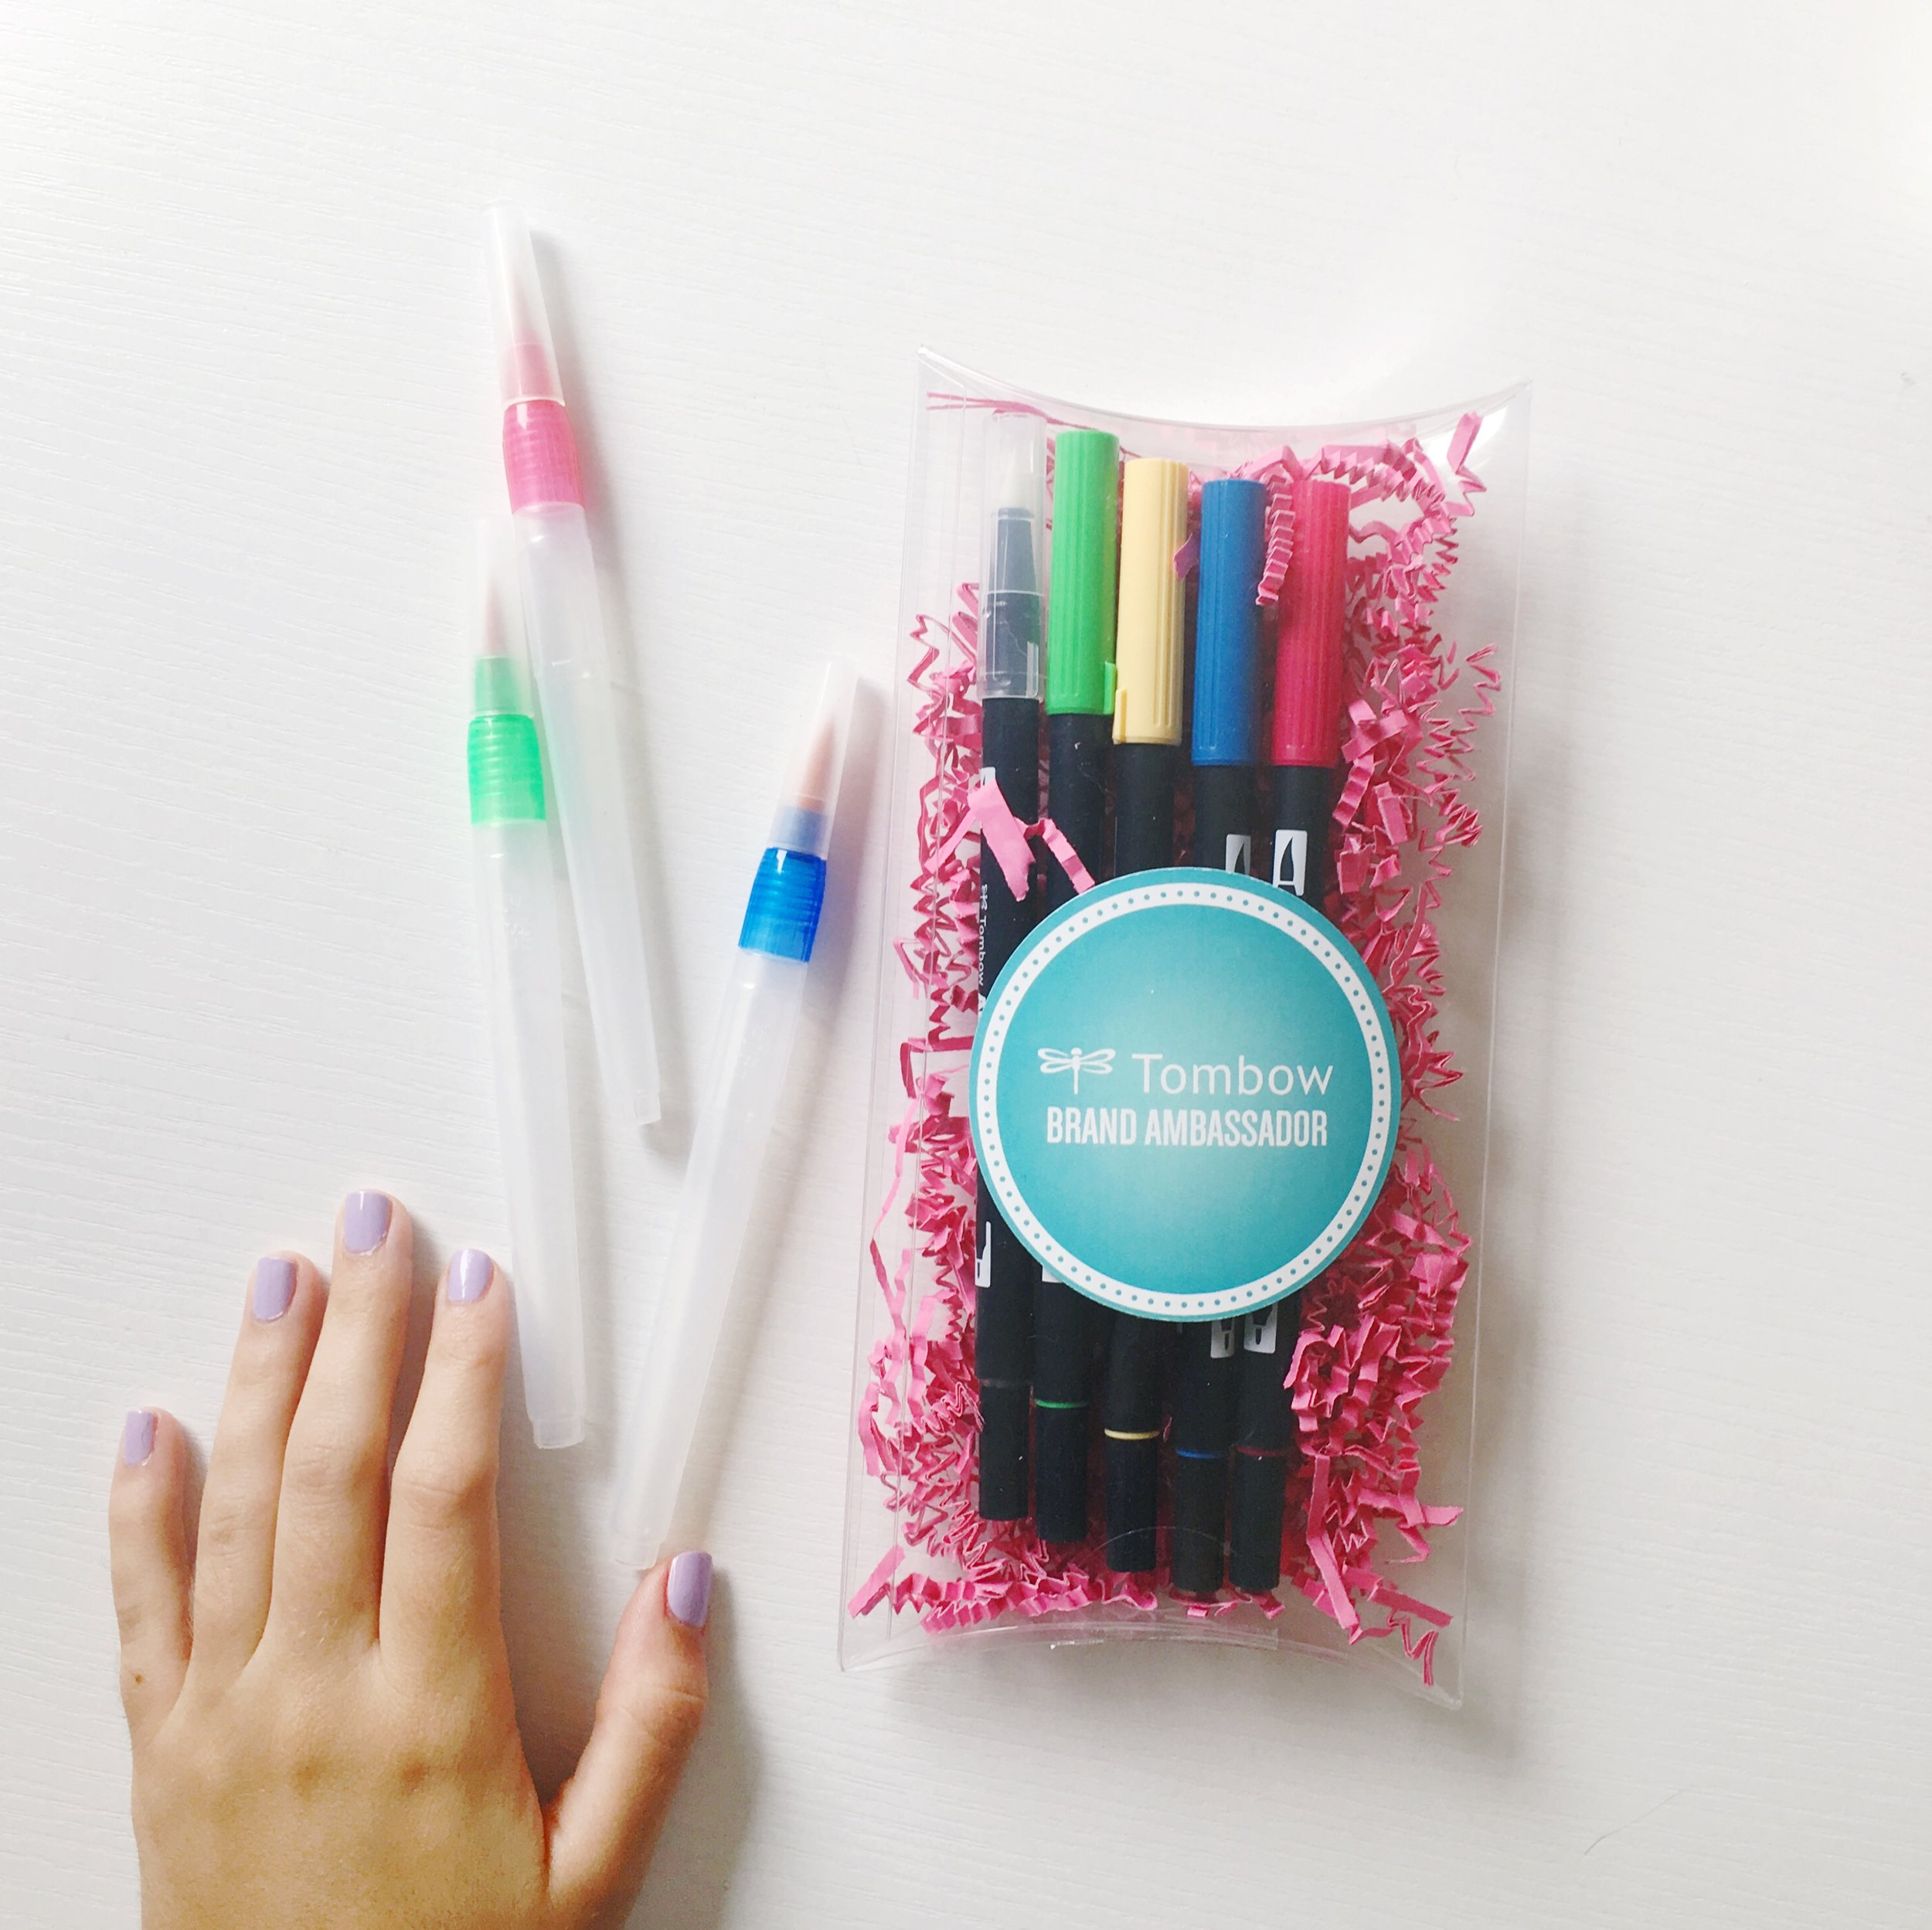 *I received this package from Tombow, as my monthly Ambassador shipment*